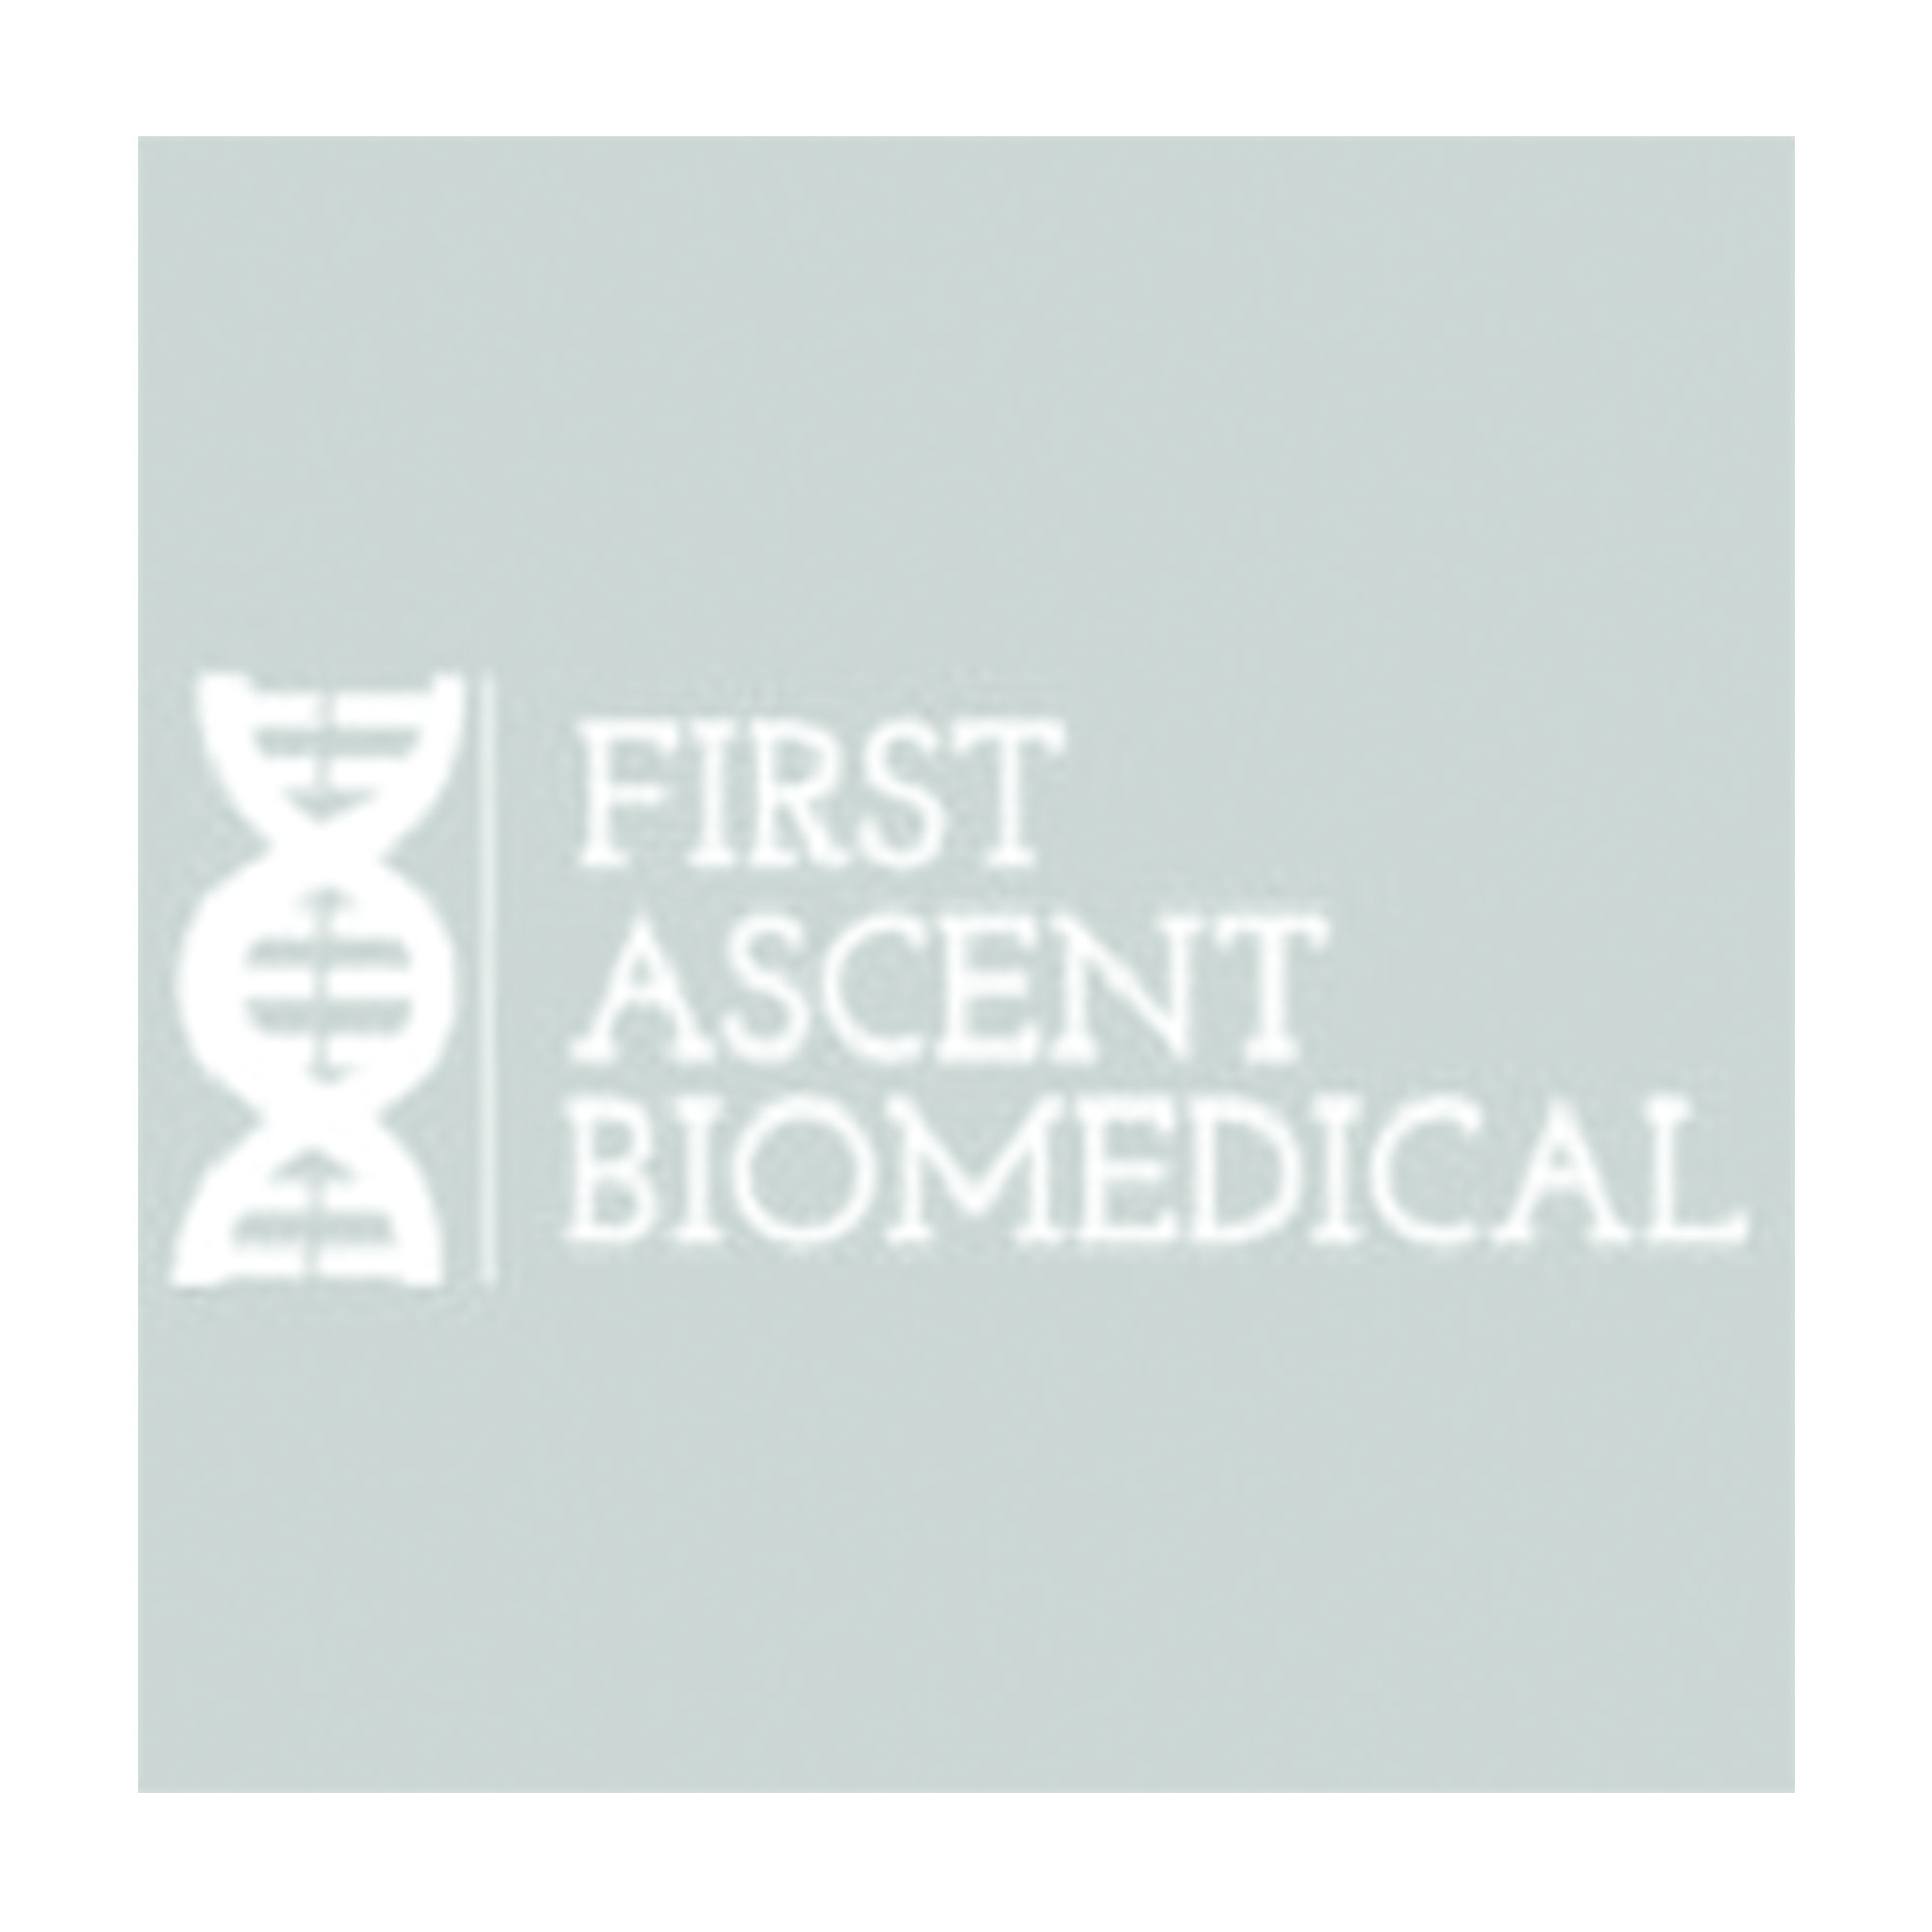 First Ascent Biomedical logo